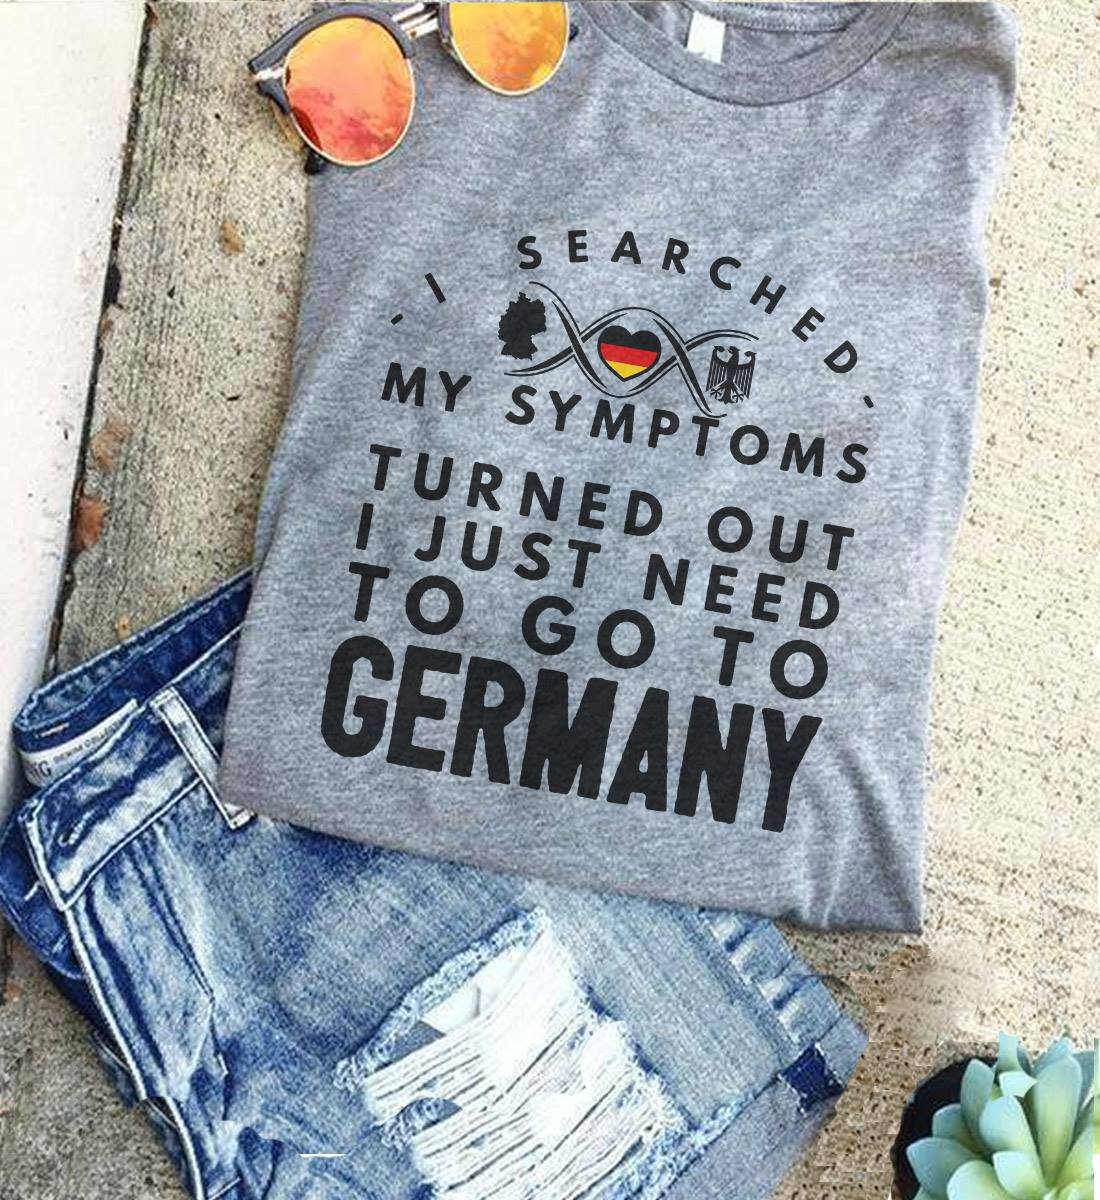 German Shirt Symptoms Turned Out To Go German